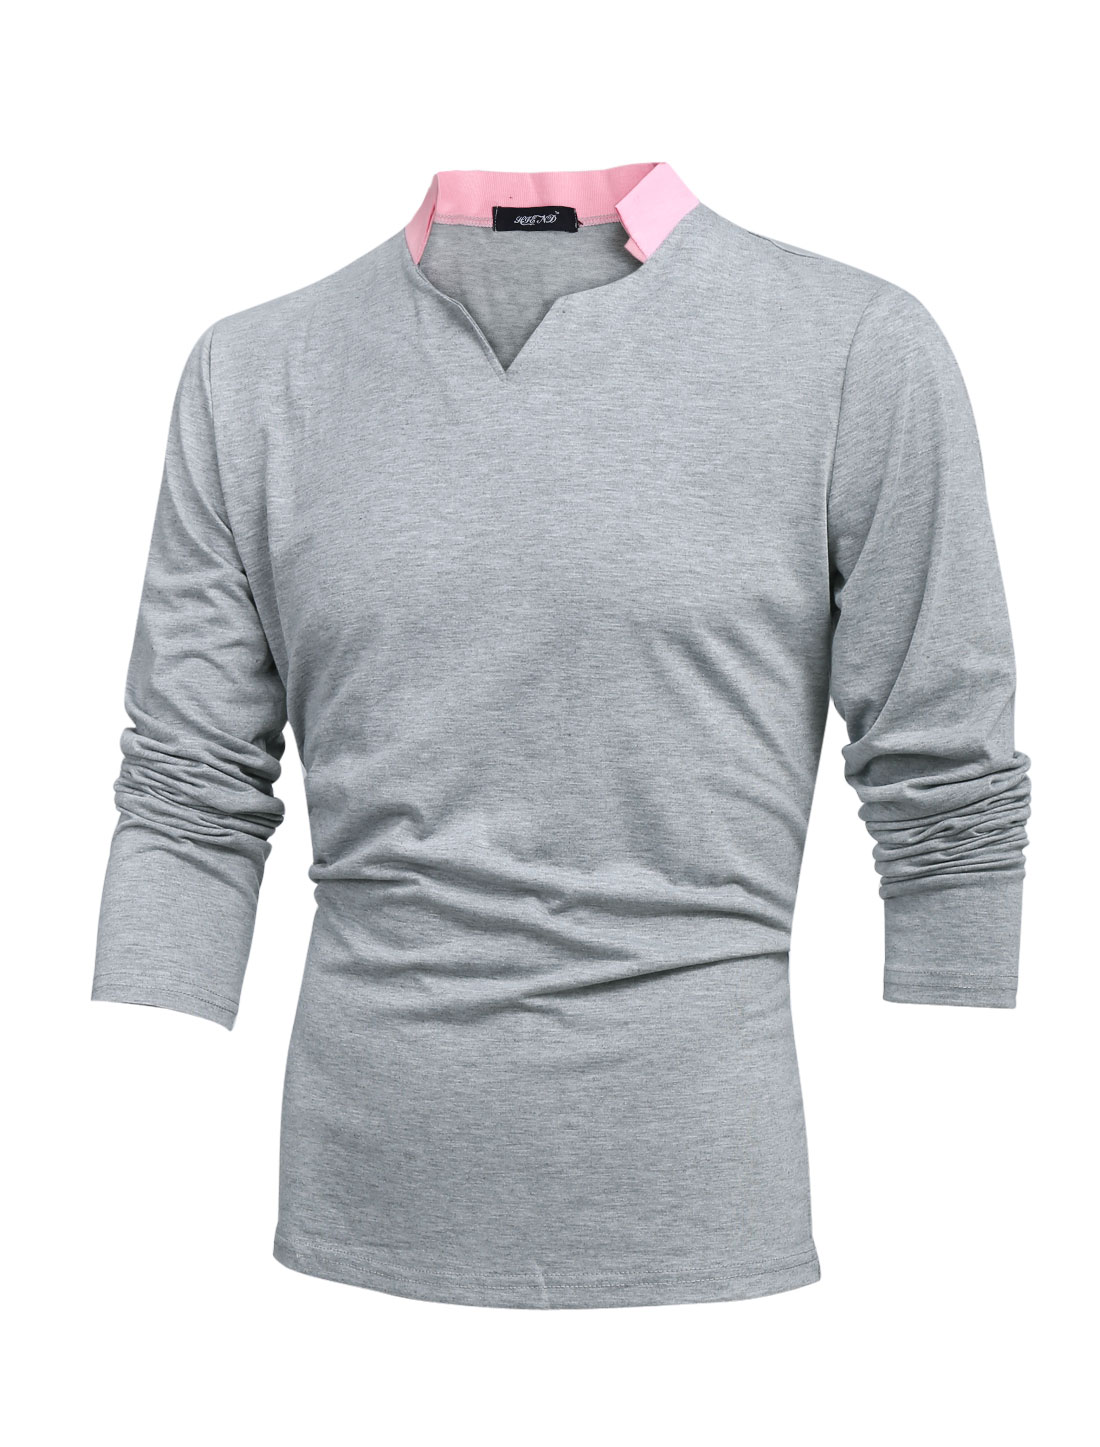 Men Color Block Notch Neck Long Sleeve Casual T-shirt Light Gray M